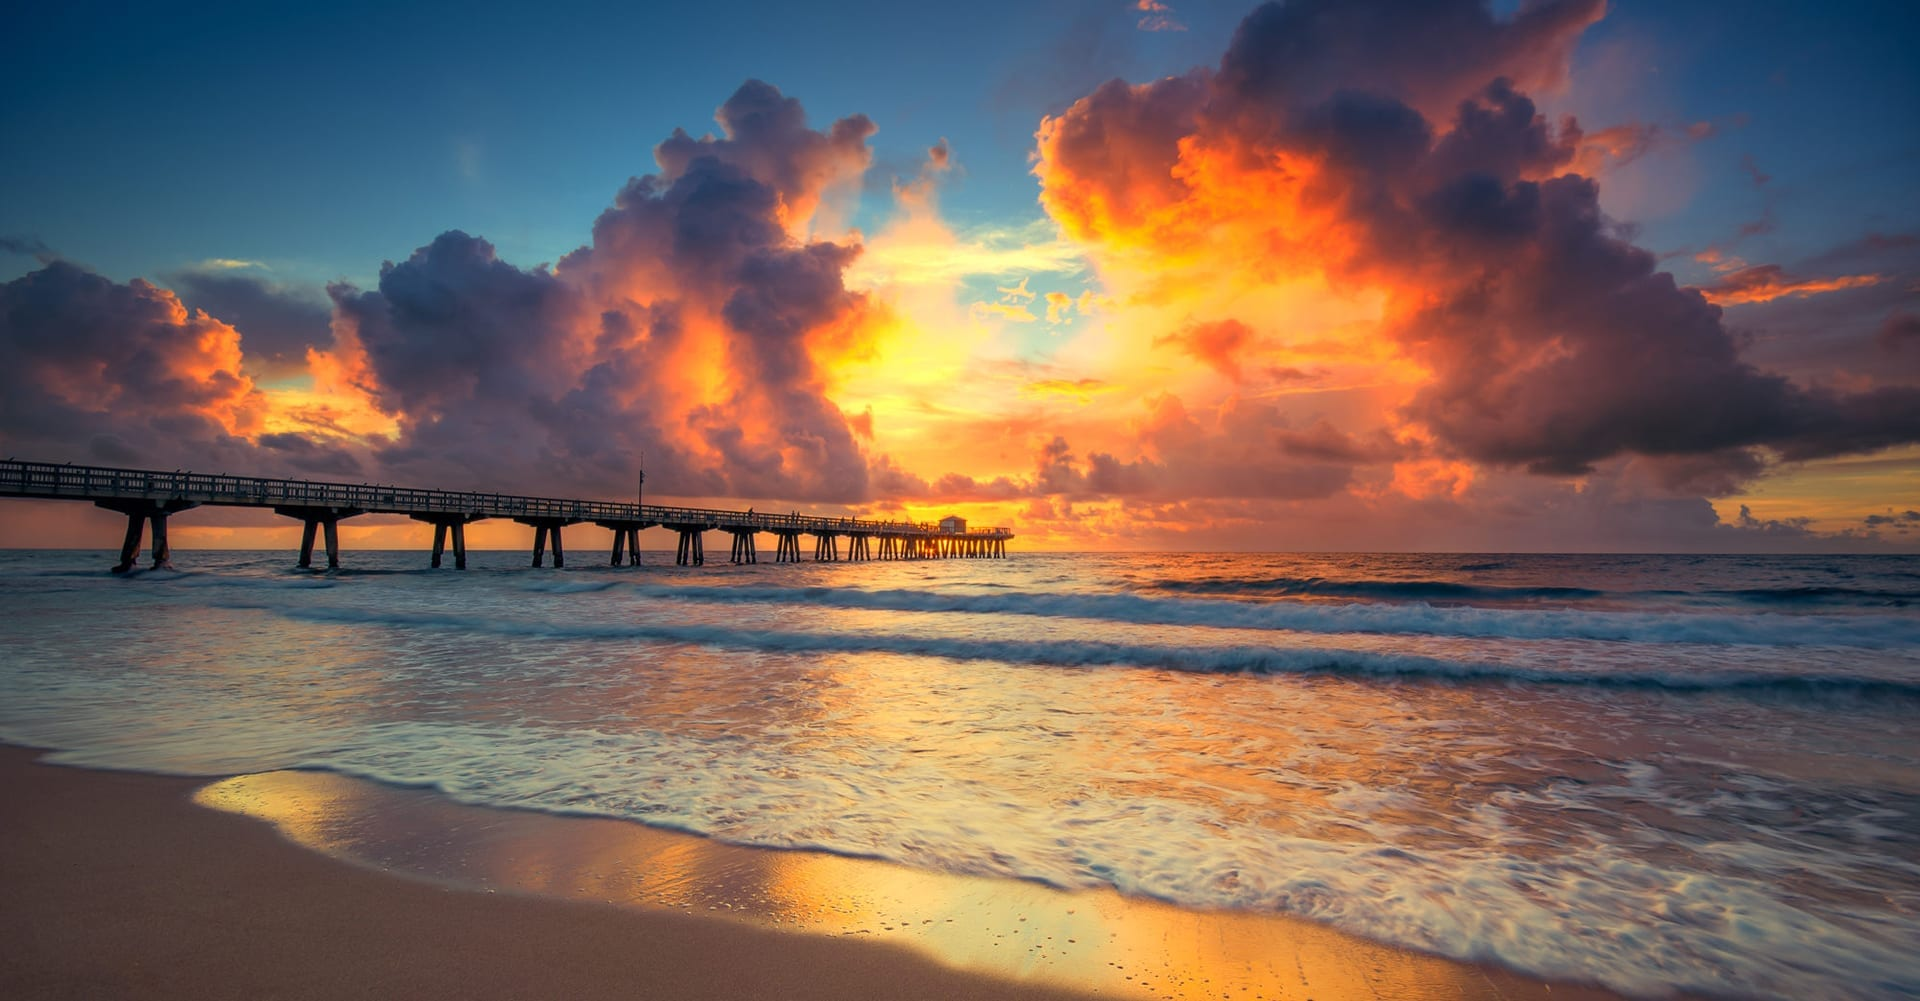 Sunrise Pompano Beach Pier Florida